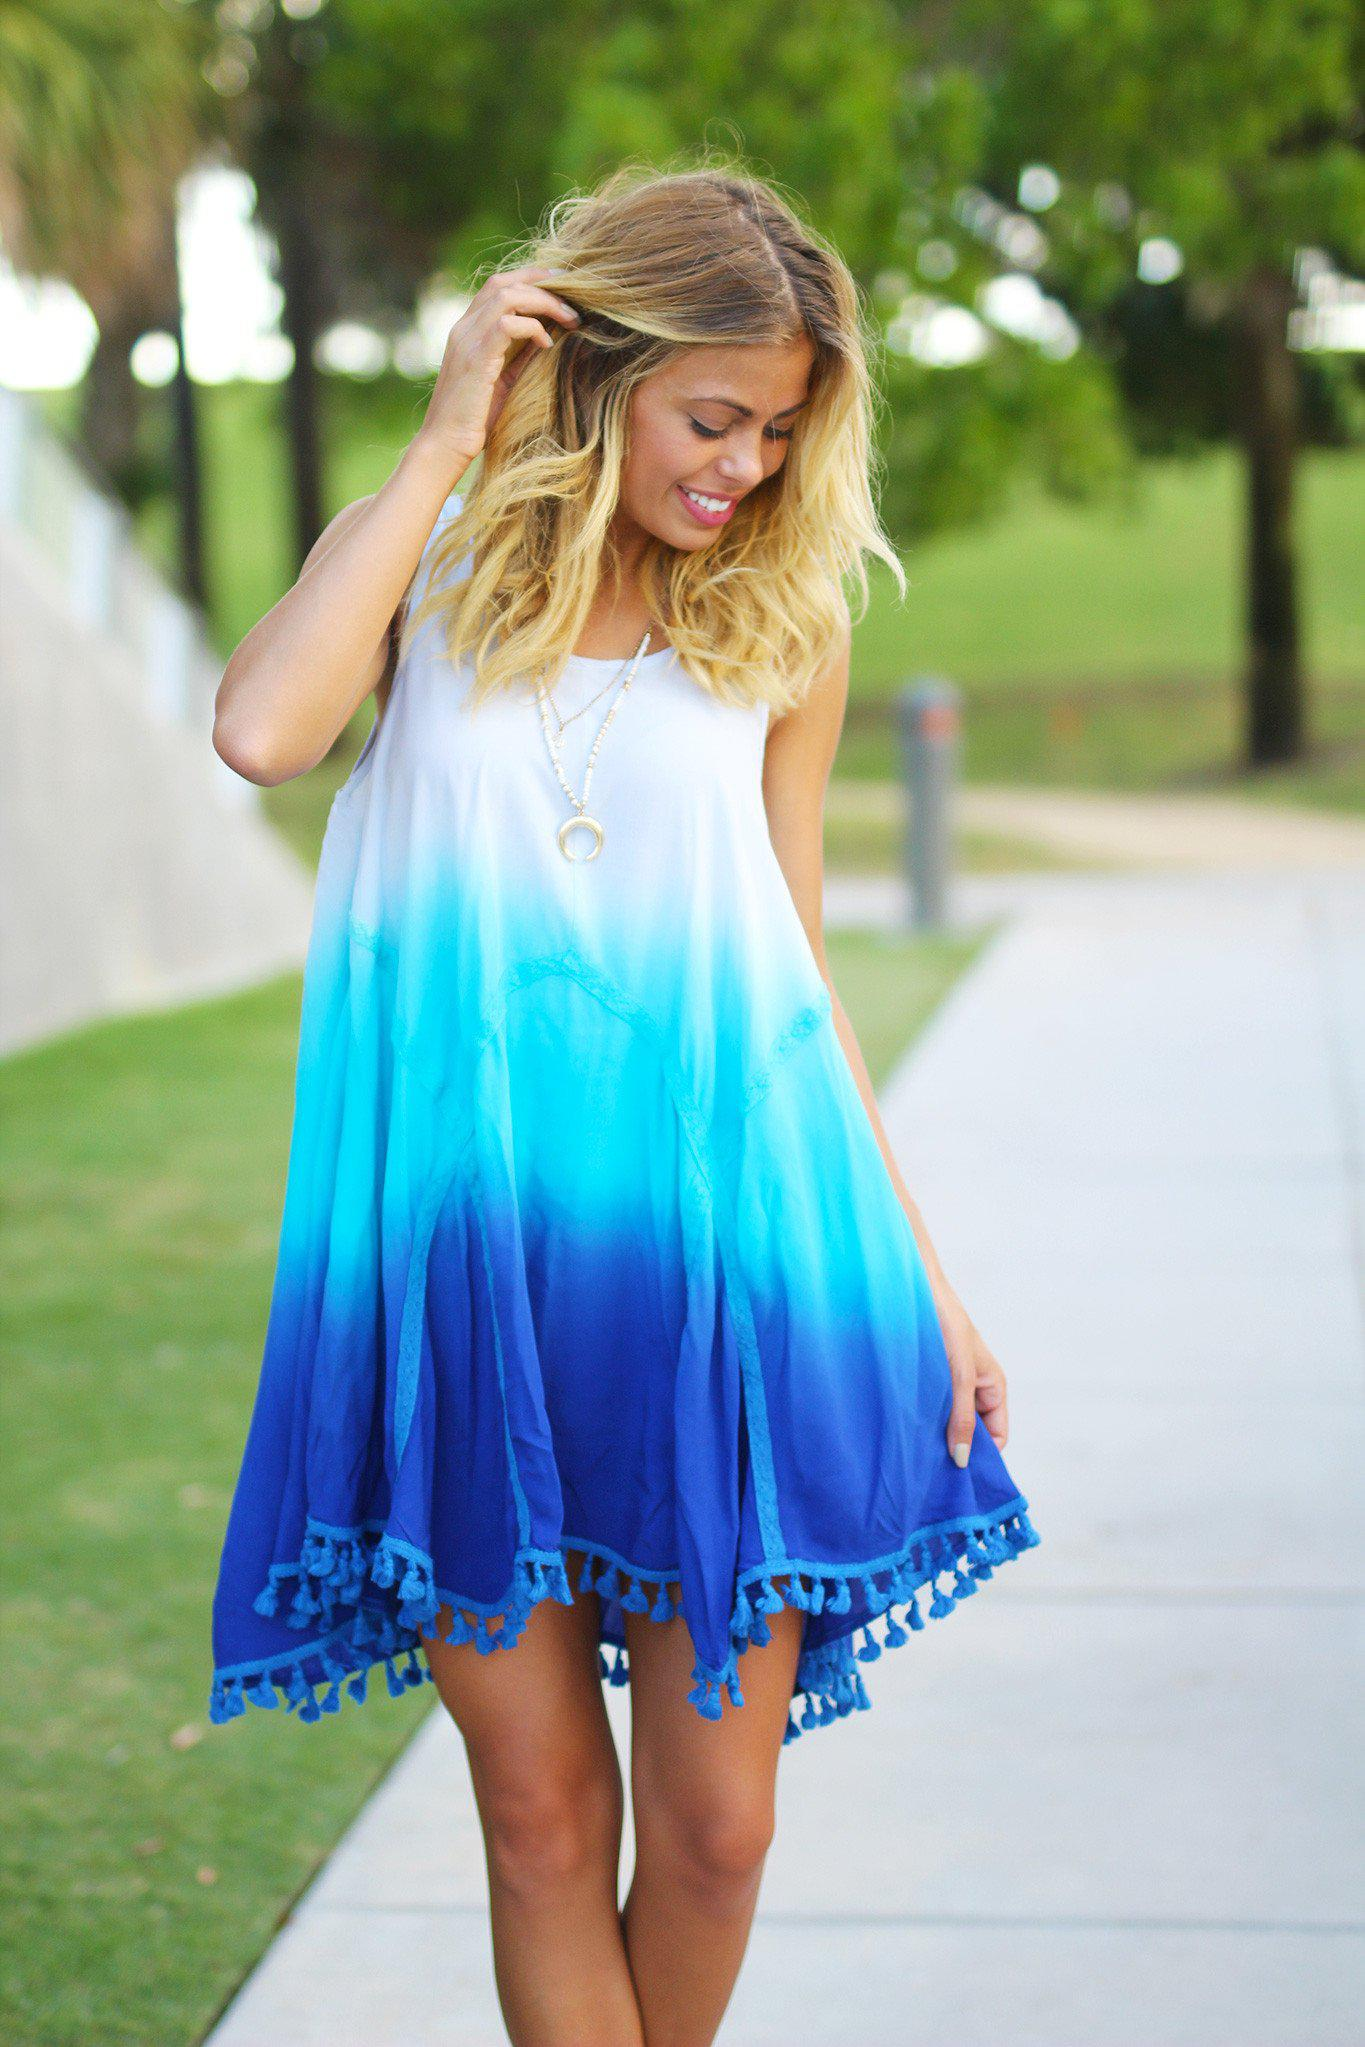 Blue Ombre Short Dress with Tassels   Ombre Loose Fit Short Dress ...